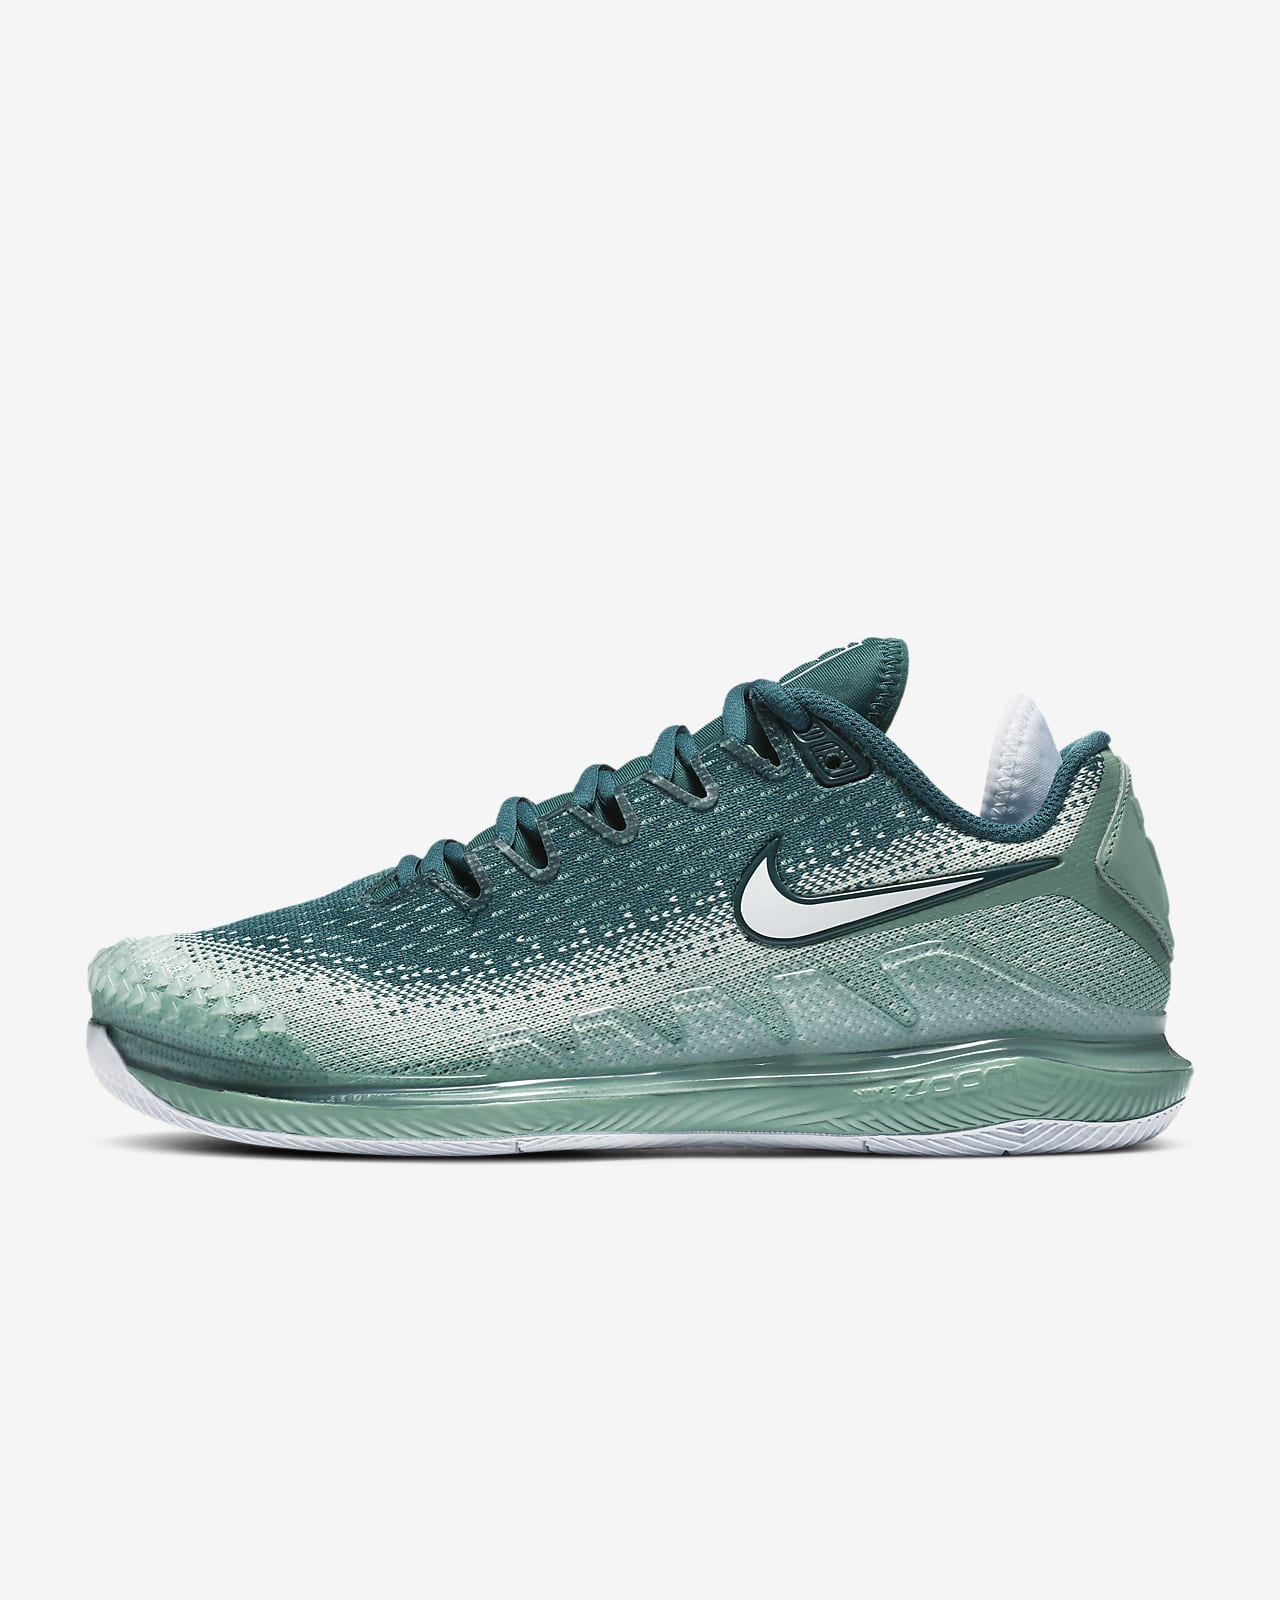 NikeCourt Air Zoom Vapor X Knit Women's Hard Court Tennis Shoe